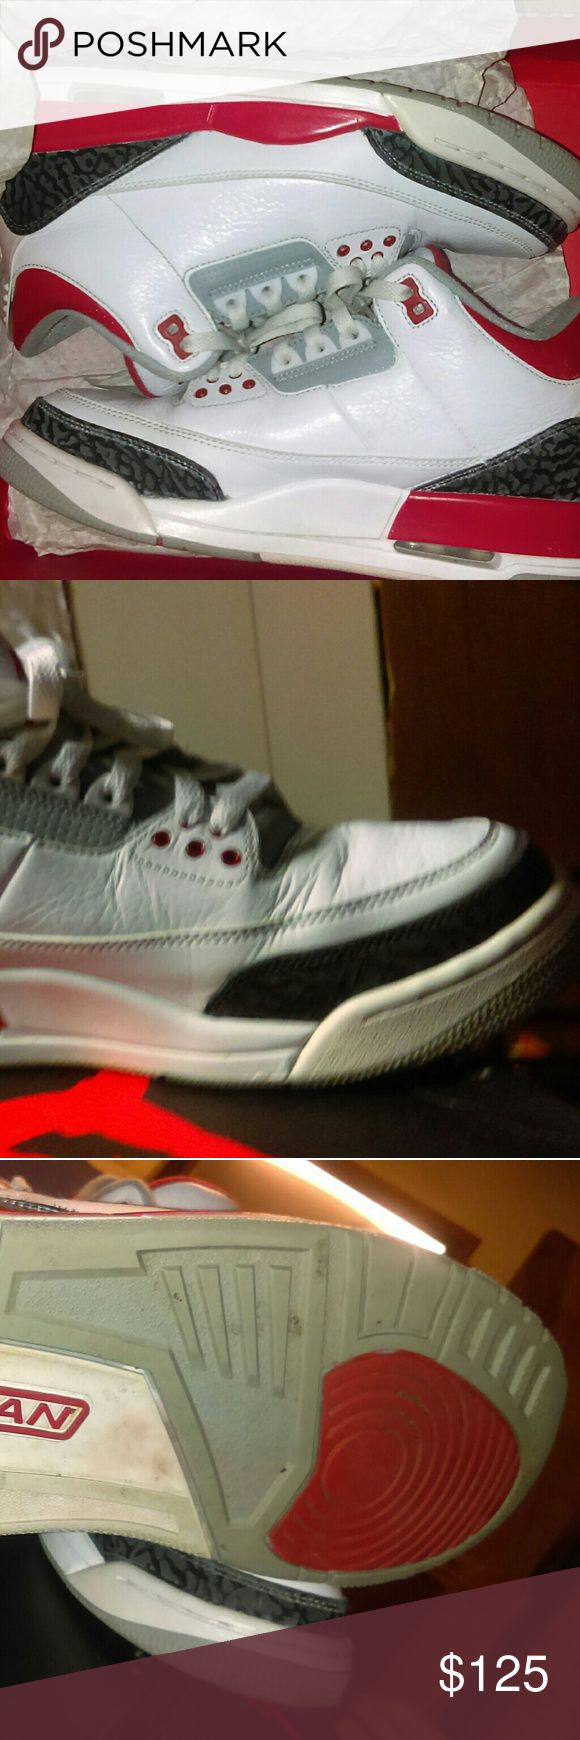 jordan retro 3s infrared fire redgreat condition jordan shoes